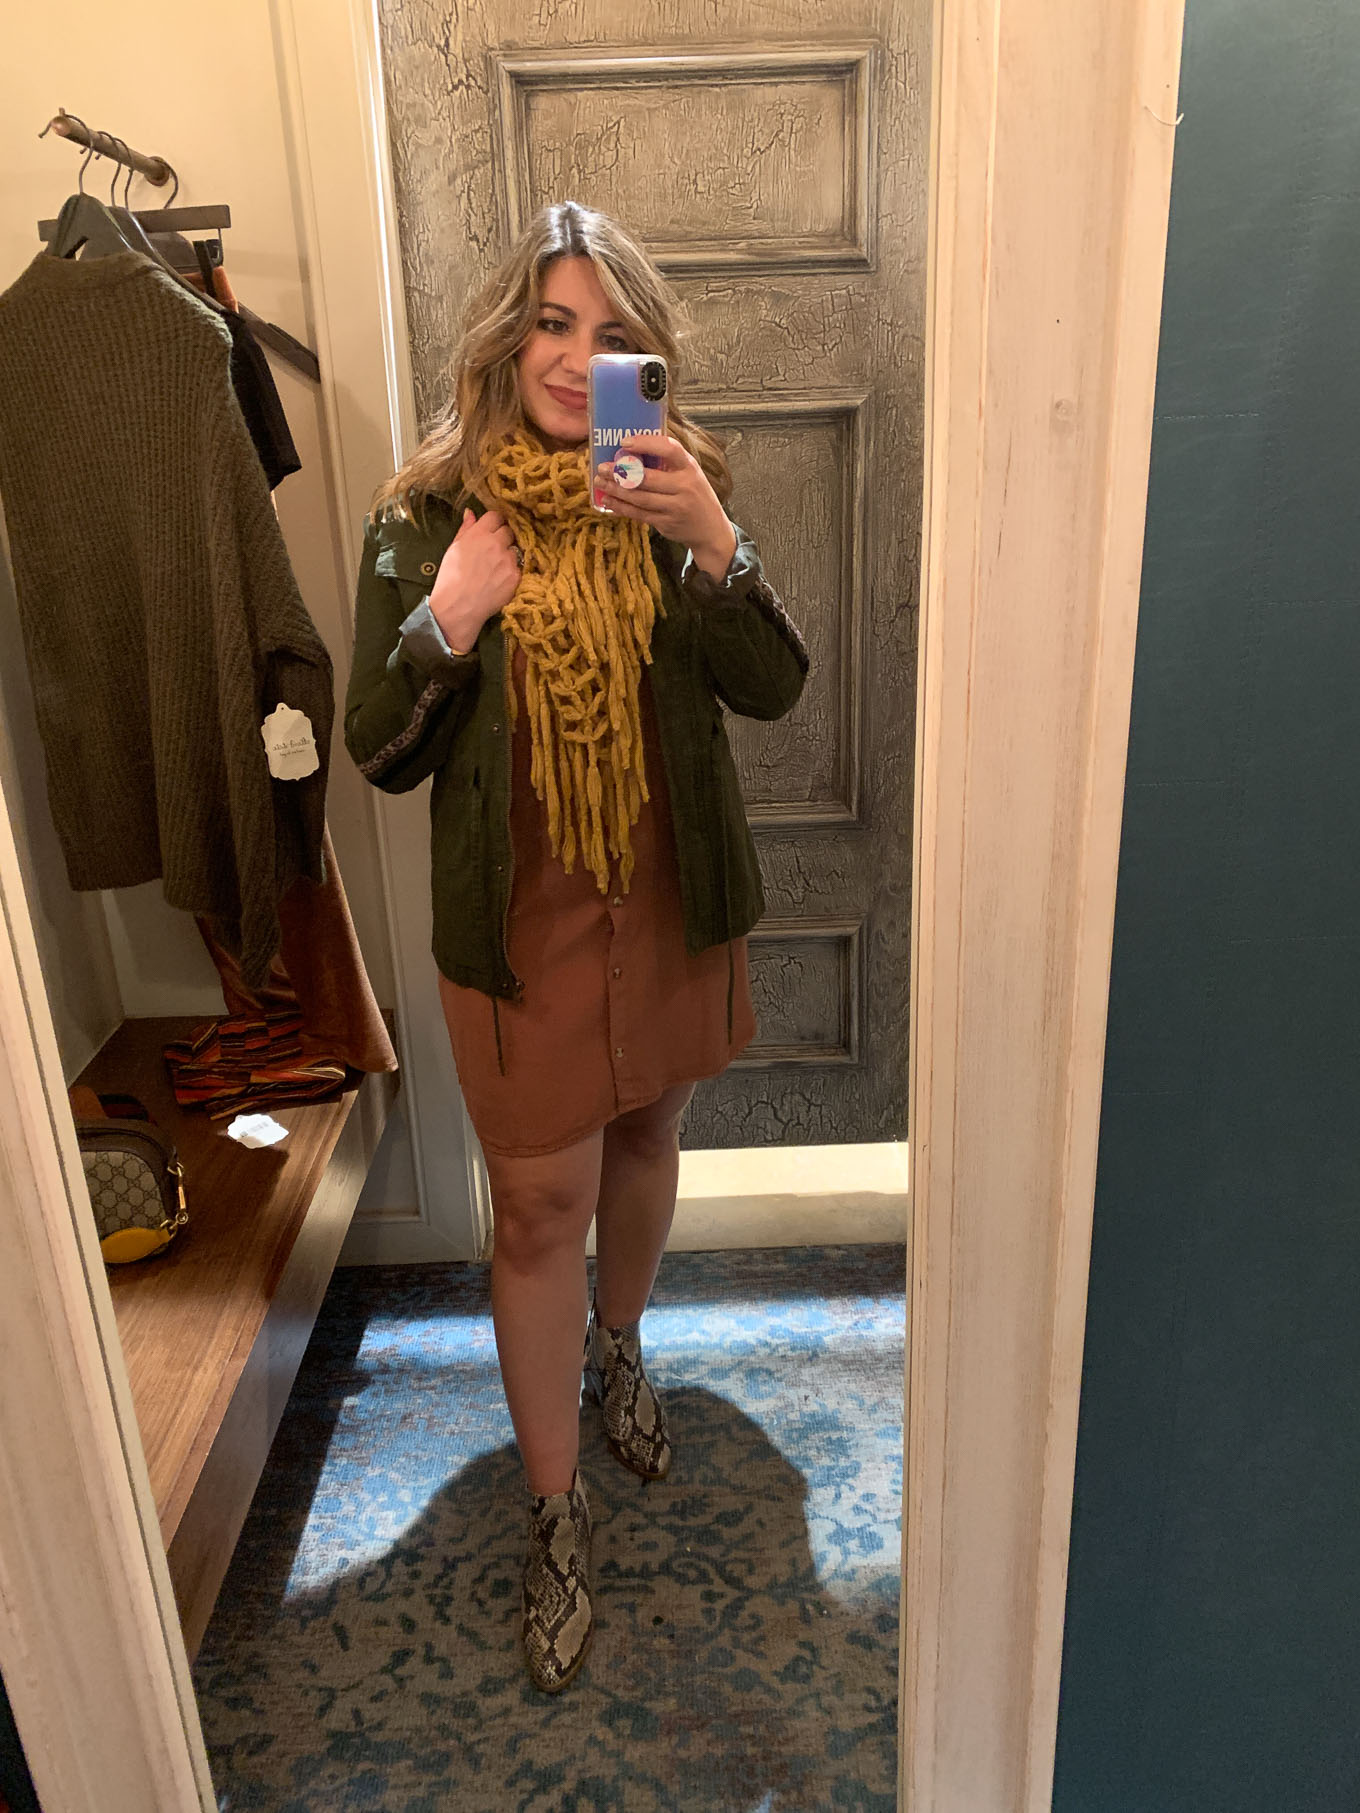 Fall Fashion at Woodfield Mall by popular Chicago fashion blog, Glass of Glam: image of a woman standing in a dressing room at Altar'd State and trying on clothes.